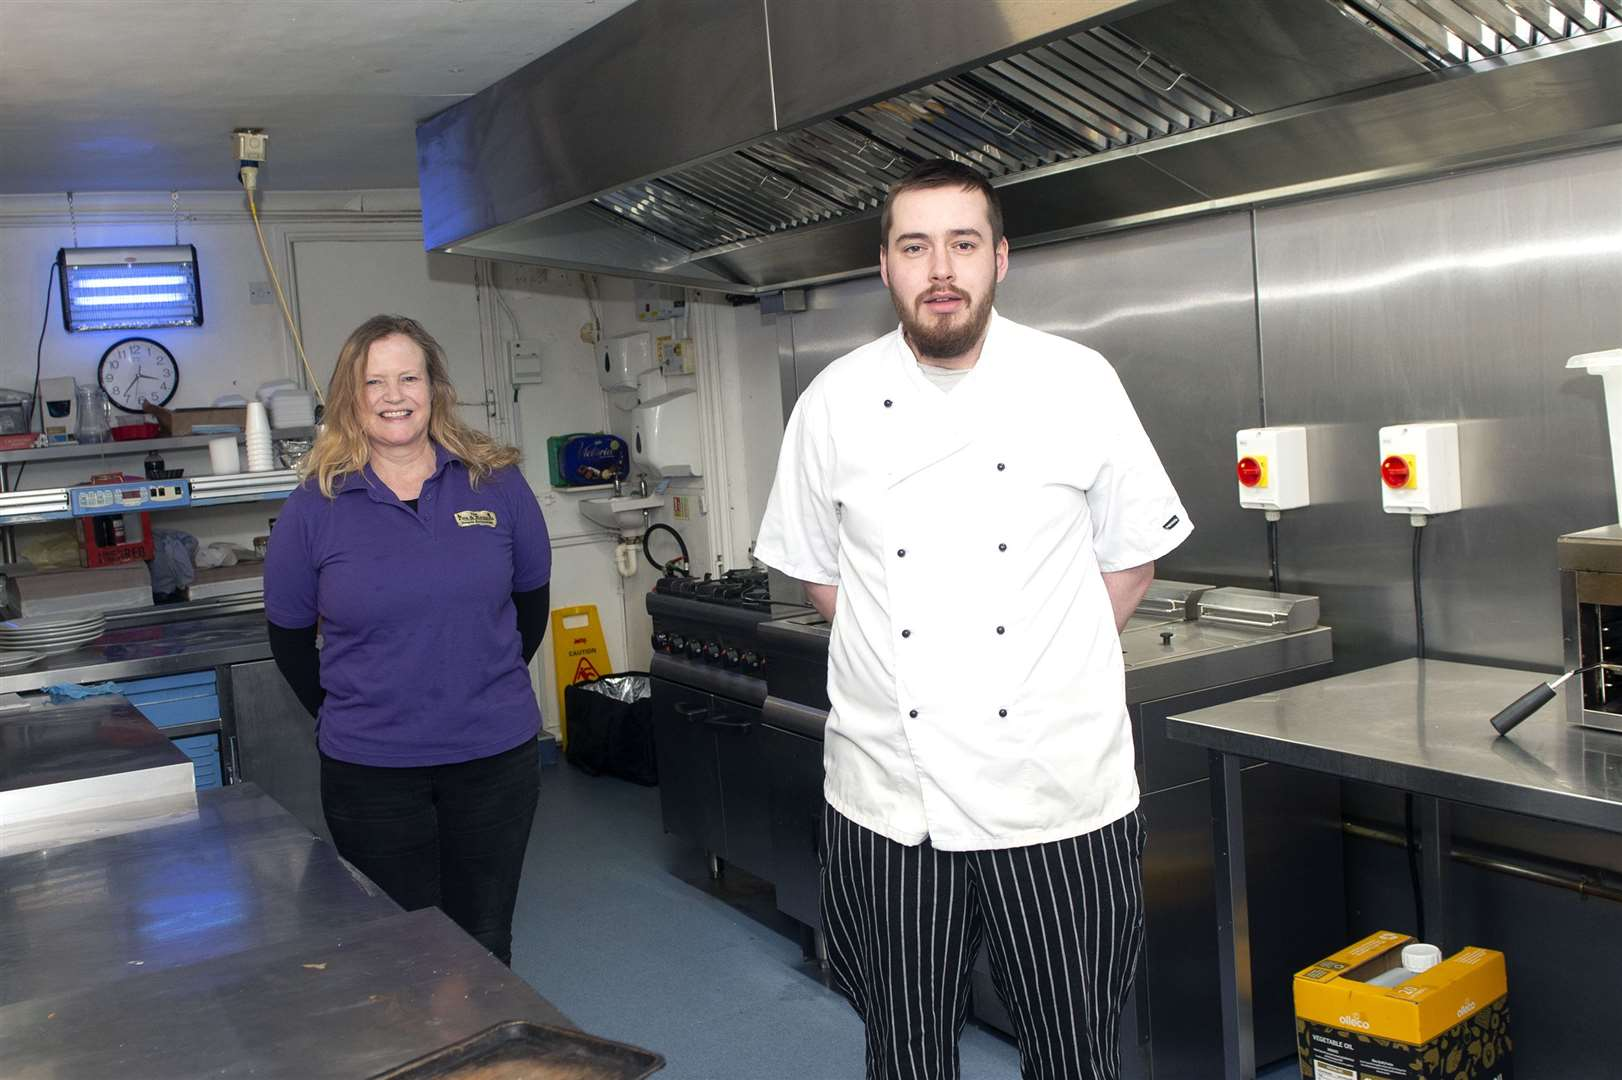 The Fox and Hounds in Steeple Bumpstead has been ranked first out of 32 pubs and restaurants in the Haverhill area by Restaurant Guru. Pub owner Kate Irwin is pictured with head chef David Jackson. Picture by Mecha Morton